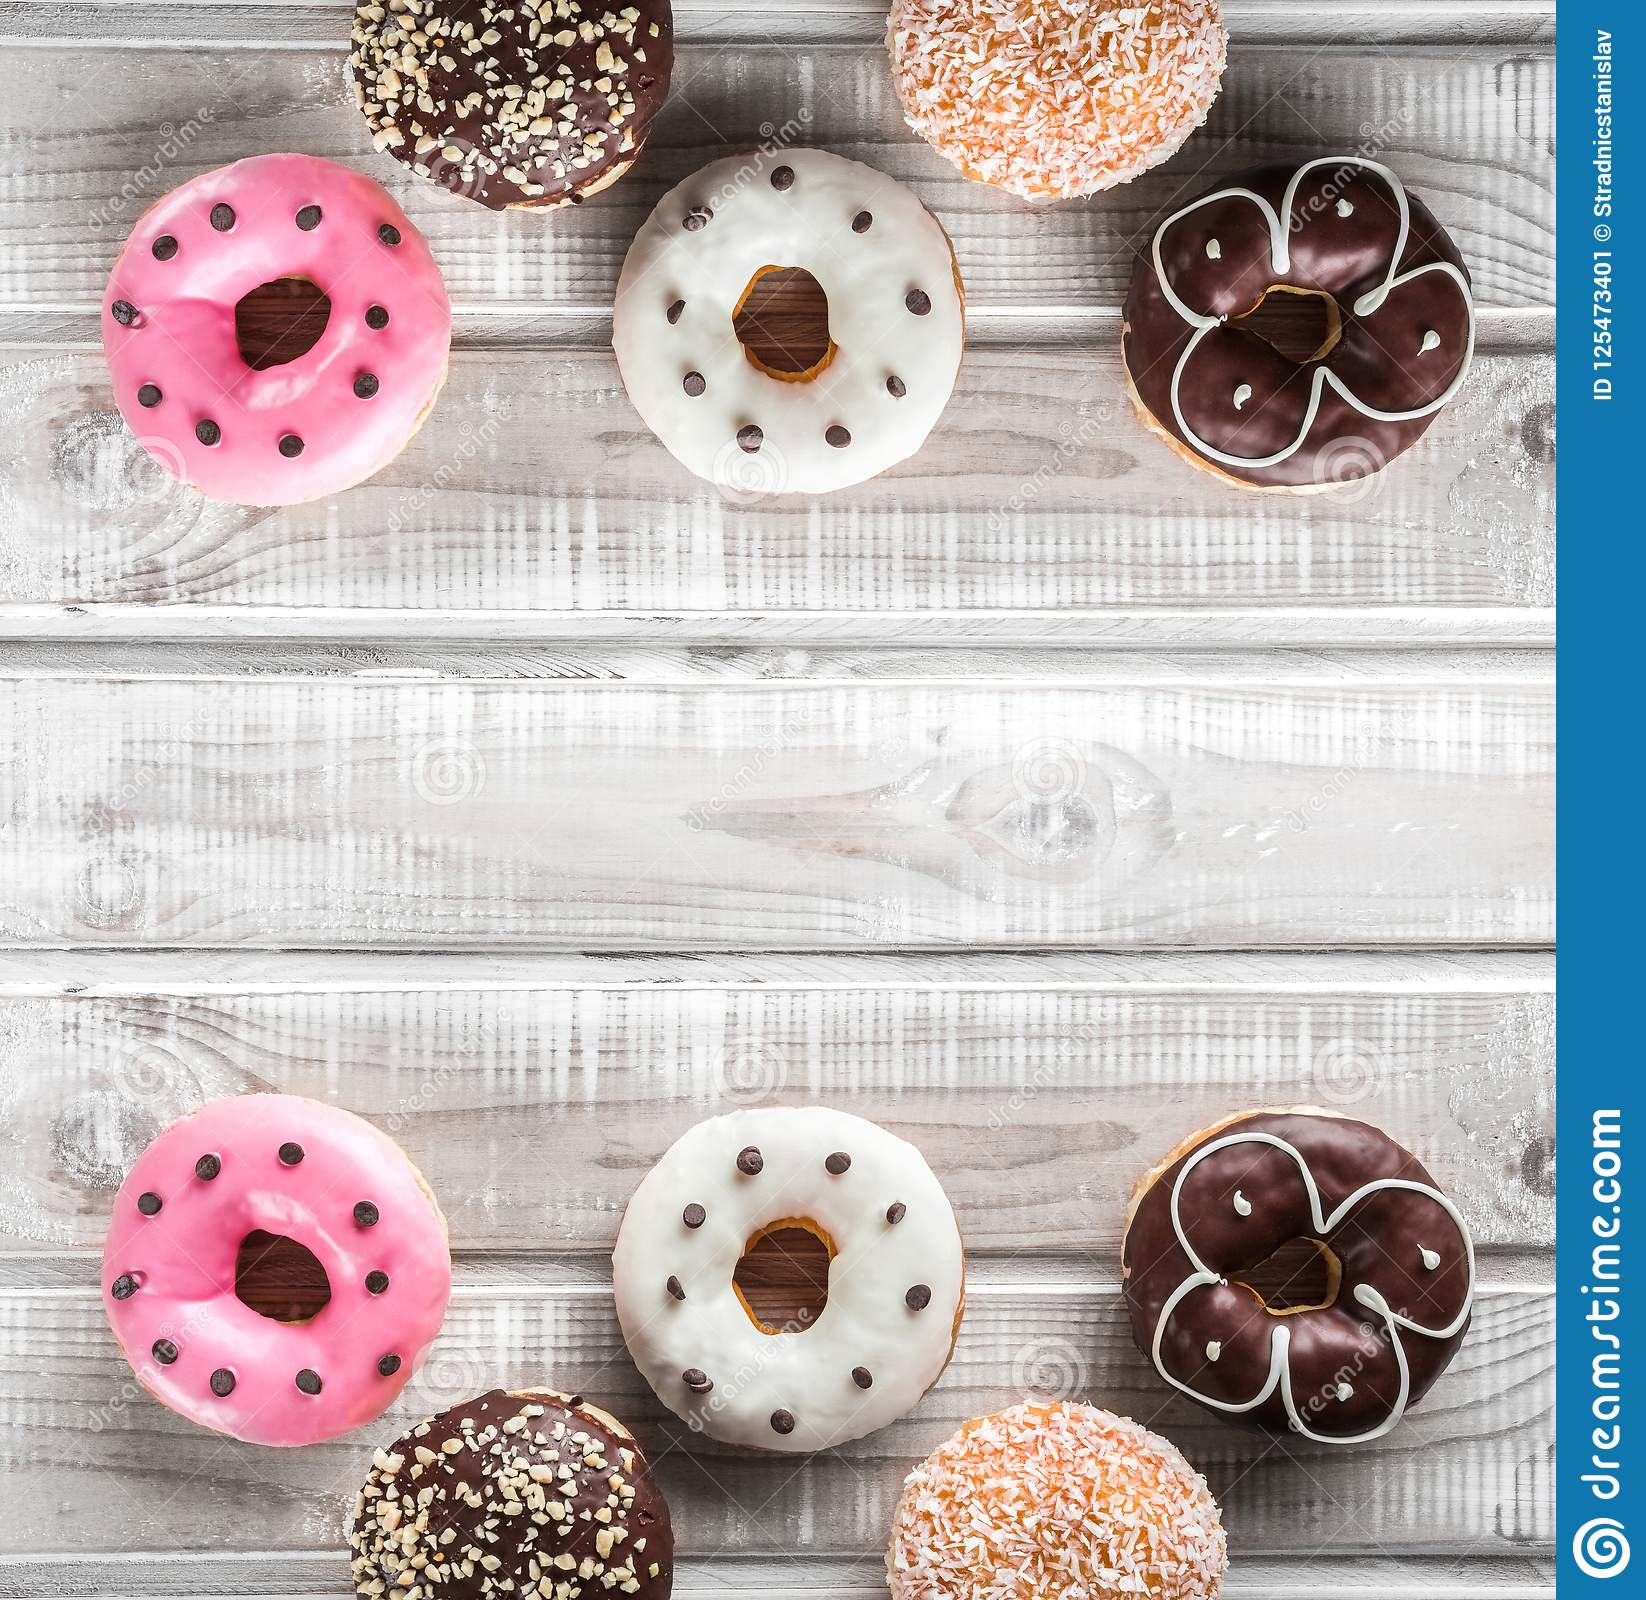 Many sweet donuts on an old wooden table, top view, space for text. Double mirror effect